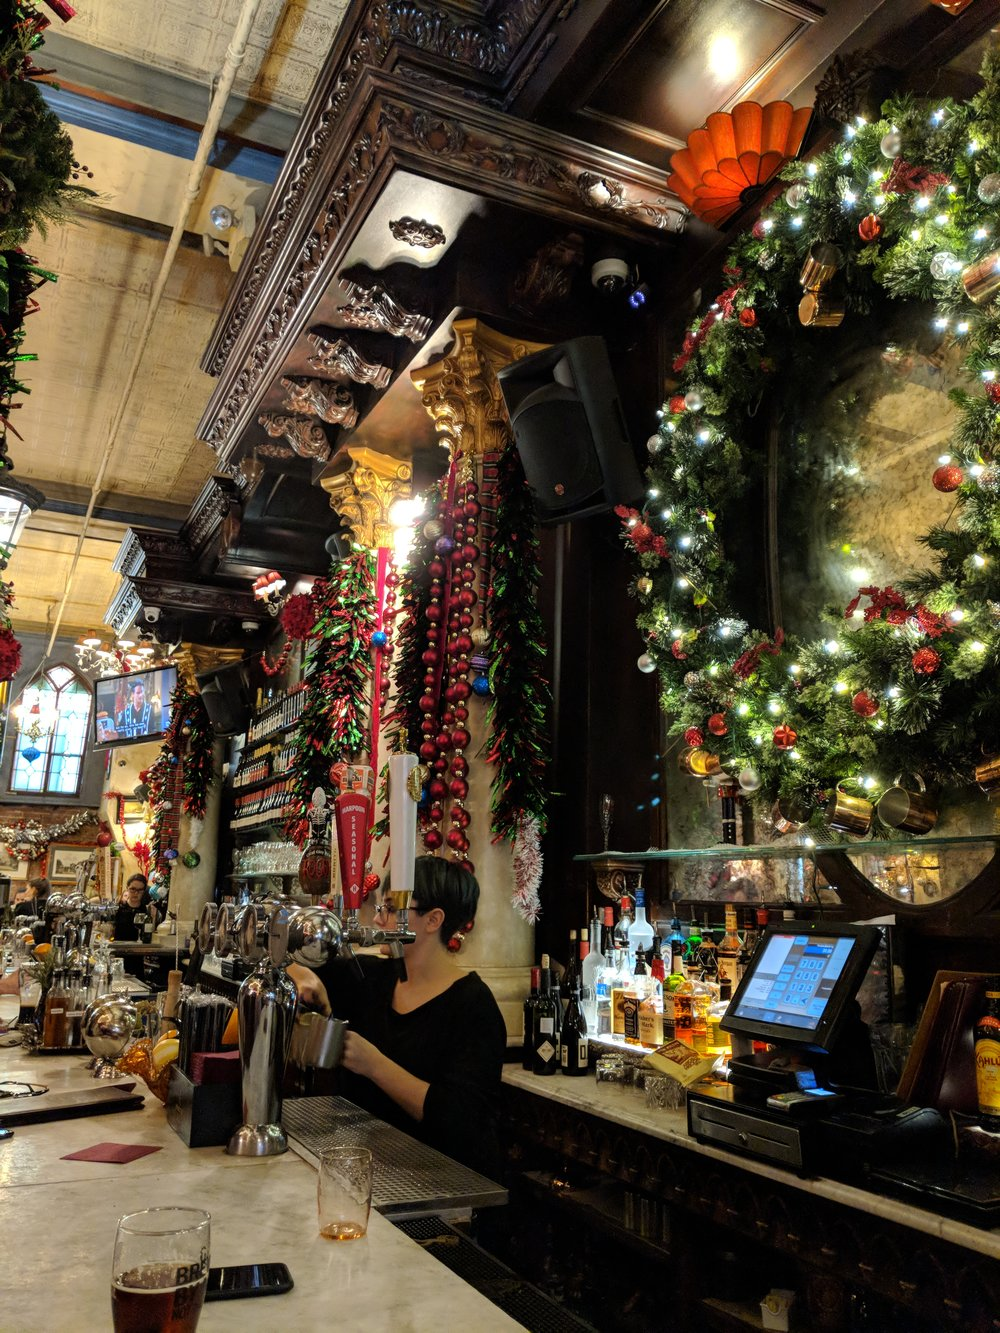 Highly recommended holiday bar/restaurant in Union Square....skip Rolf's (see in previous post) and head here. MUCH better experience!